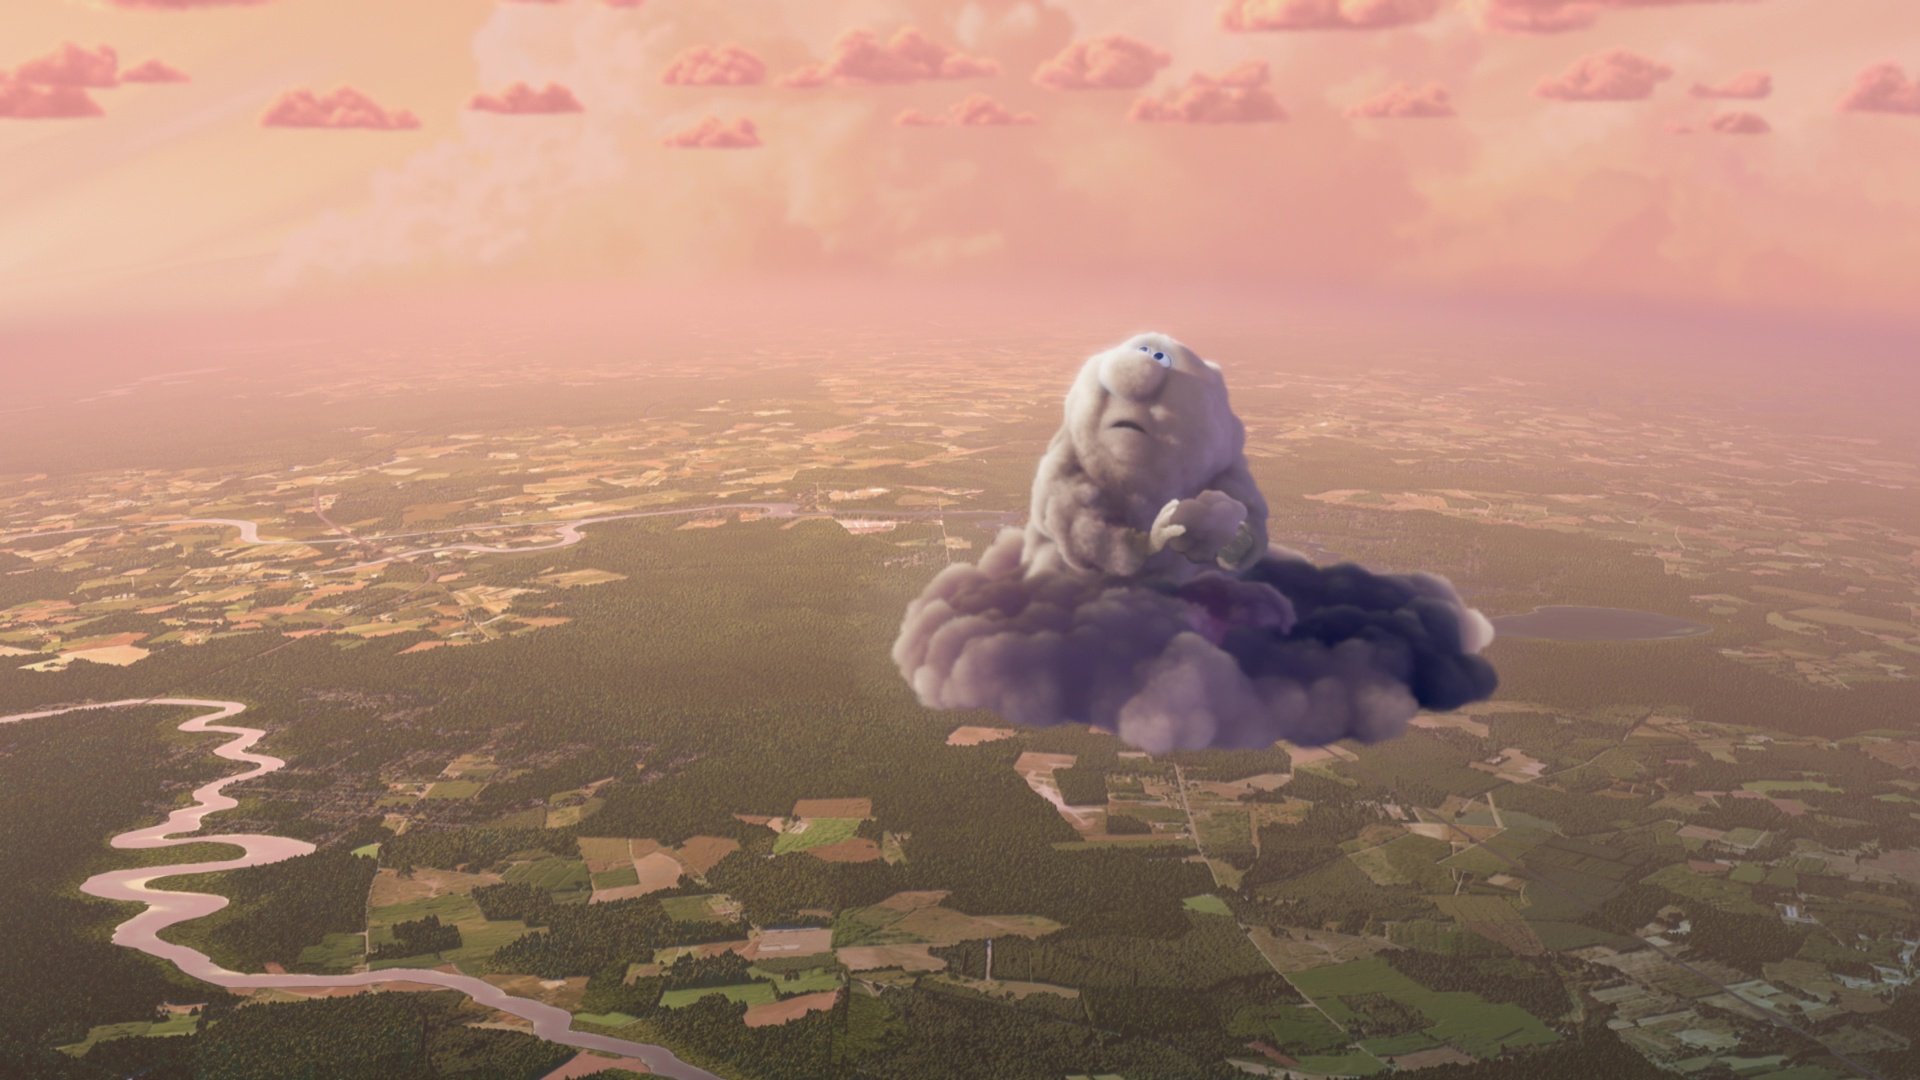 pixar disney passages nuageaux partly cloudy